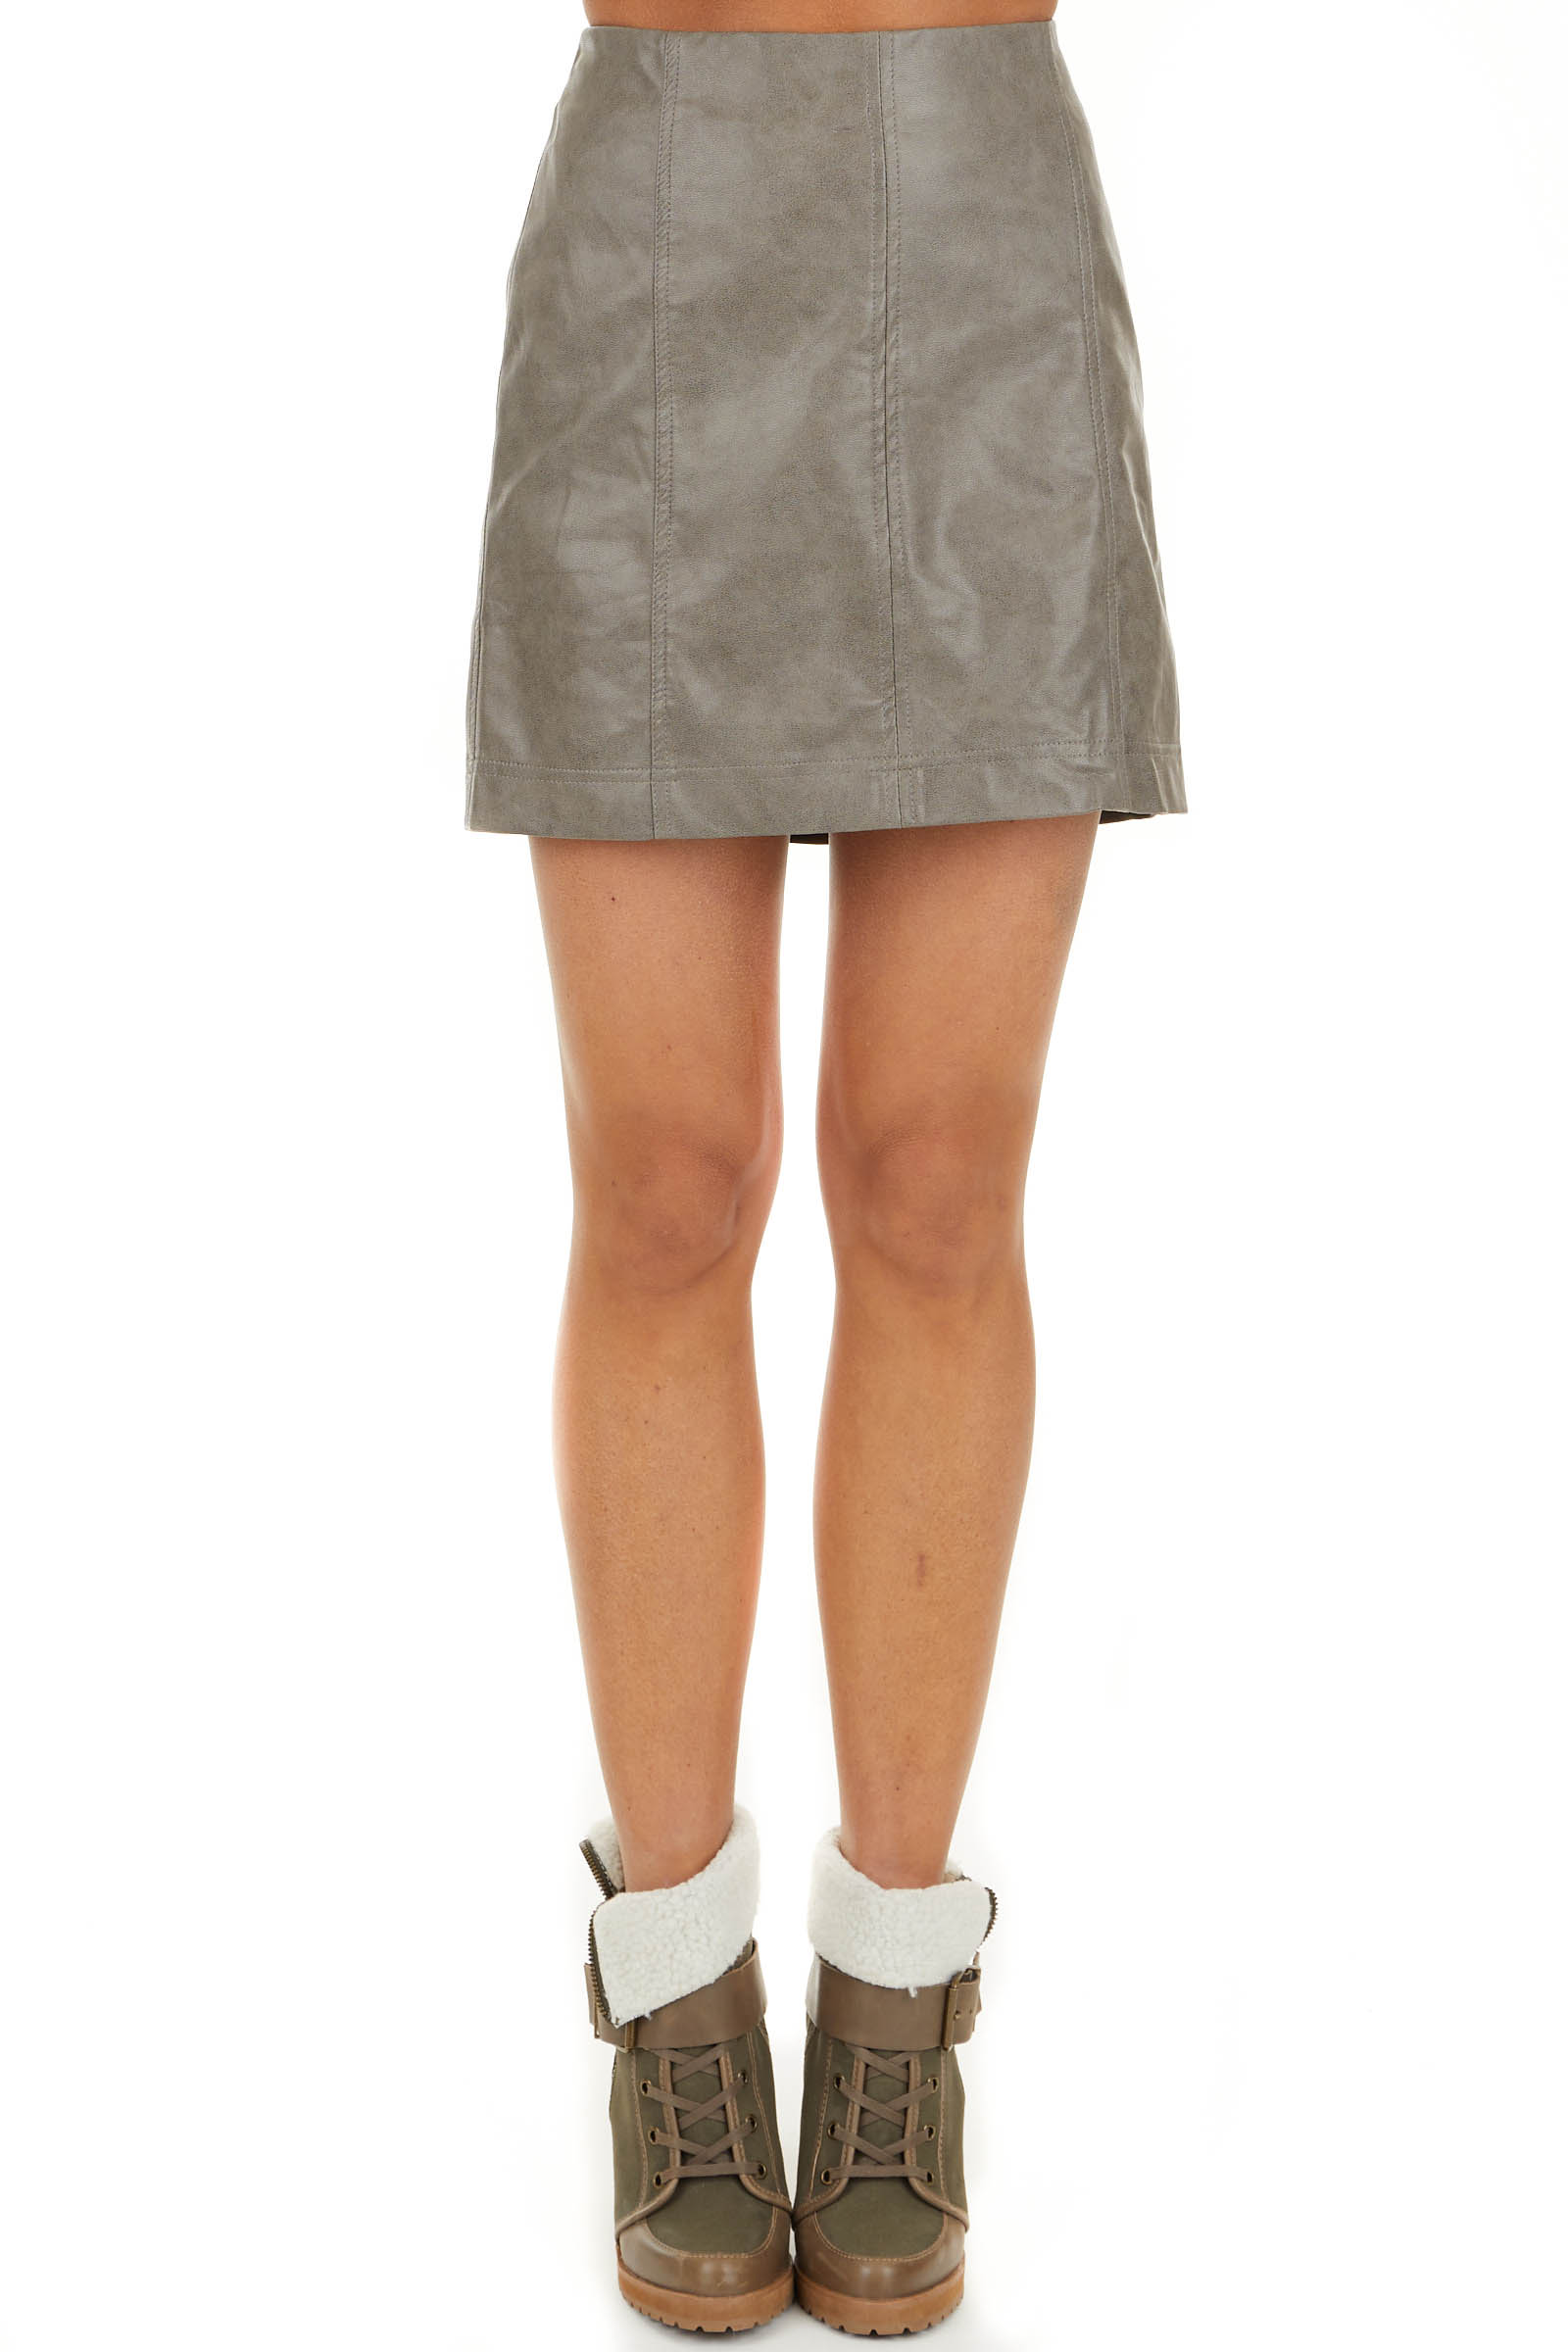 Taupe Faux Leather Fitted Mini Skirt with Zip Up Closure front view